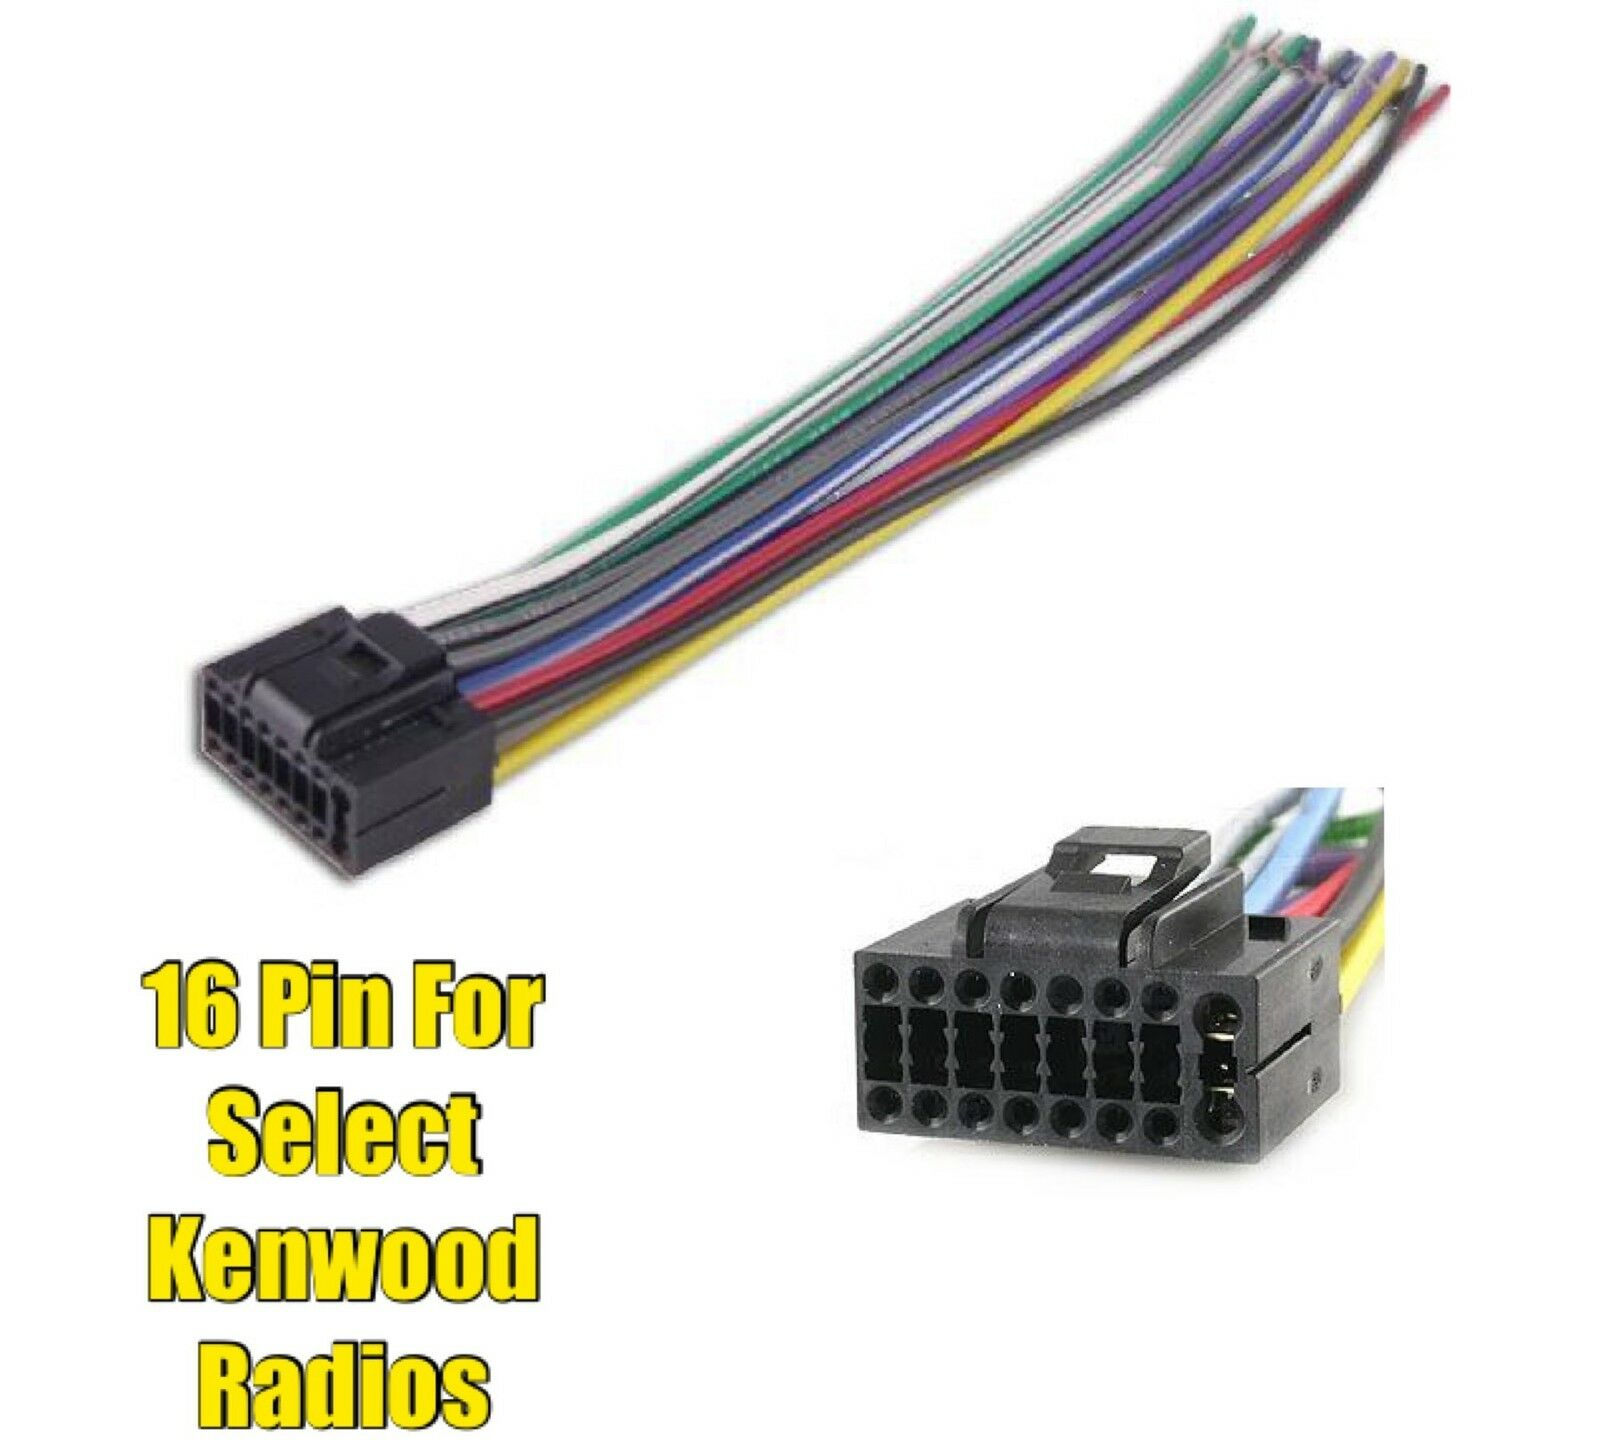 Car Stereo Radio Replacement Wire Harness Plug for select Kenwood 16 Pin  Radios 1 of 1 See More